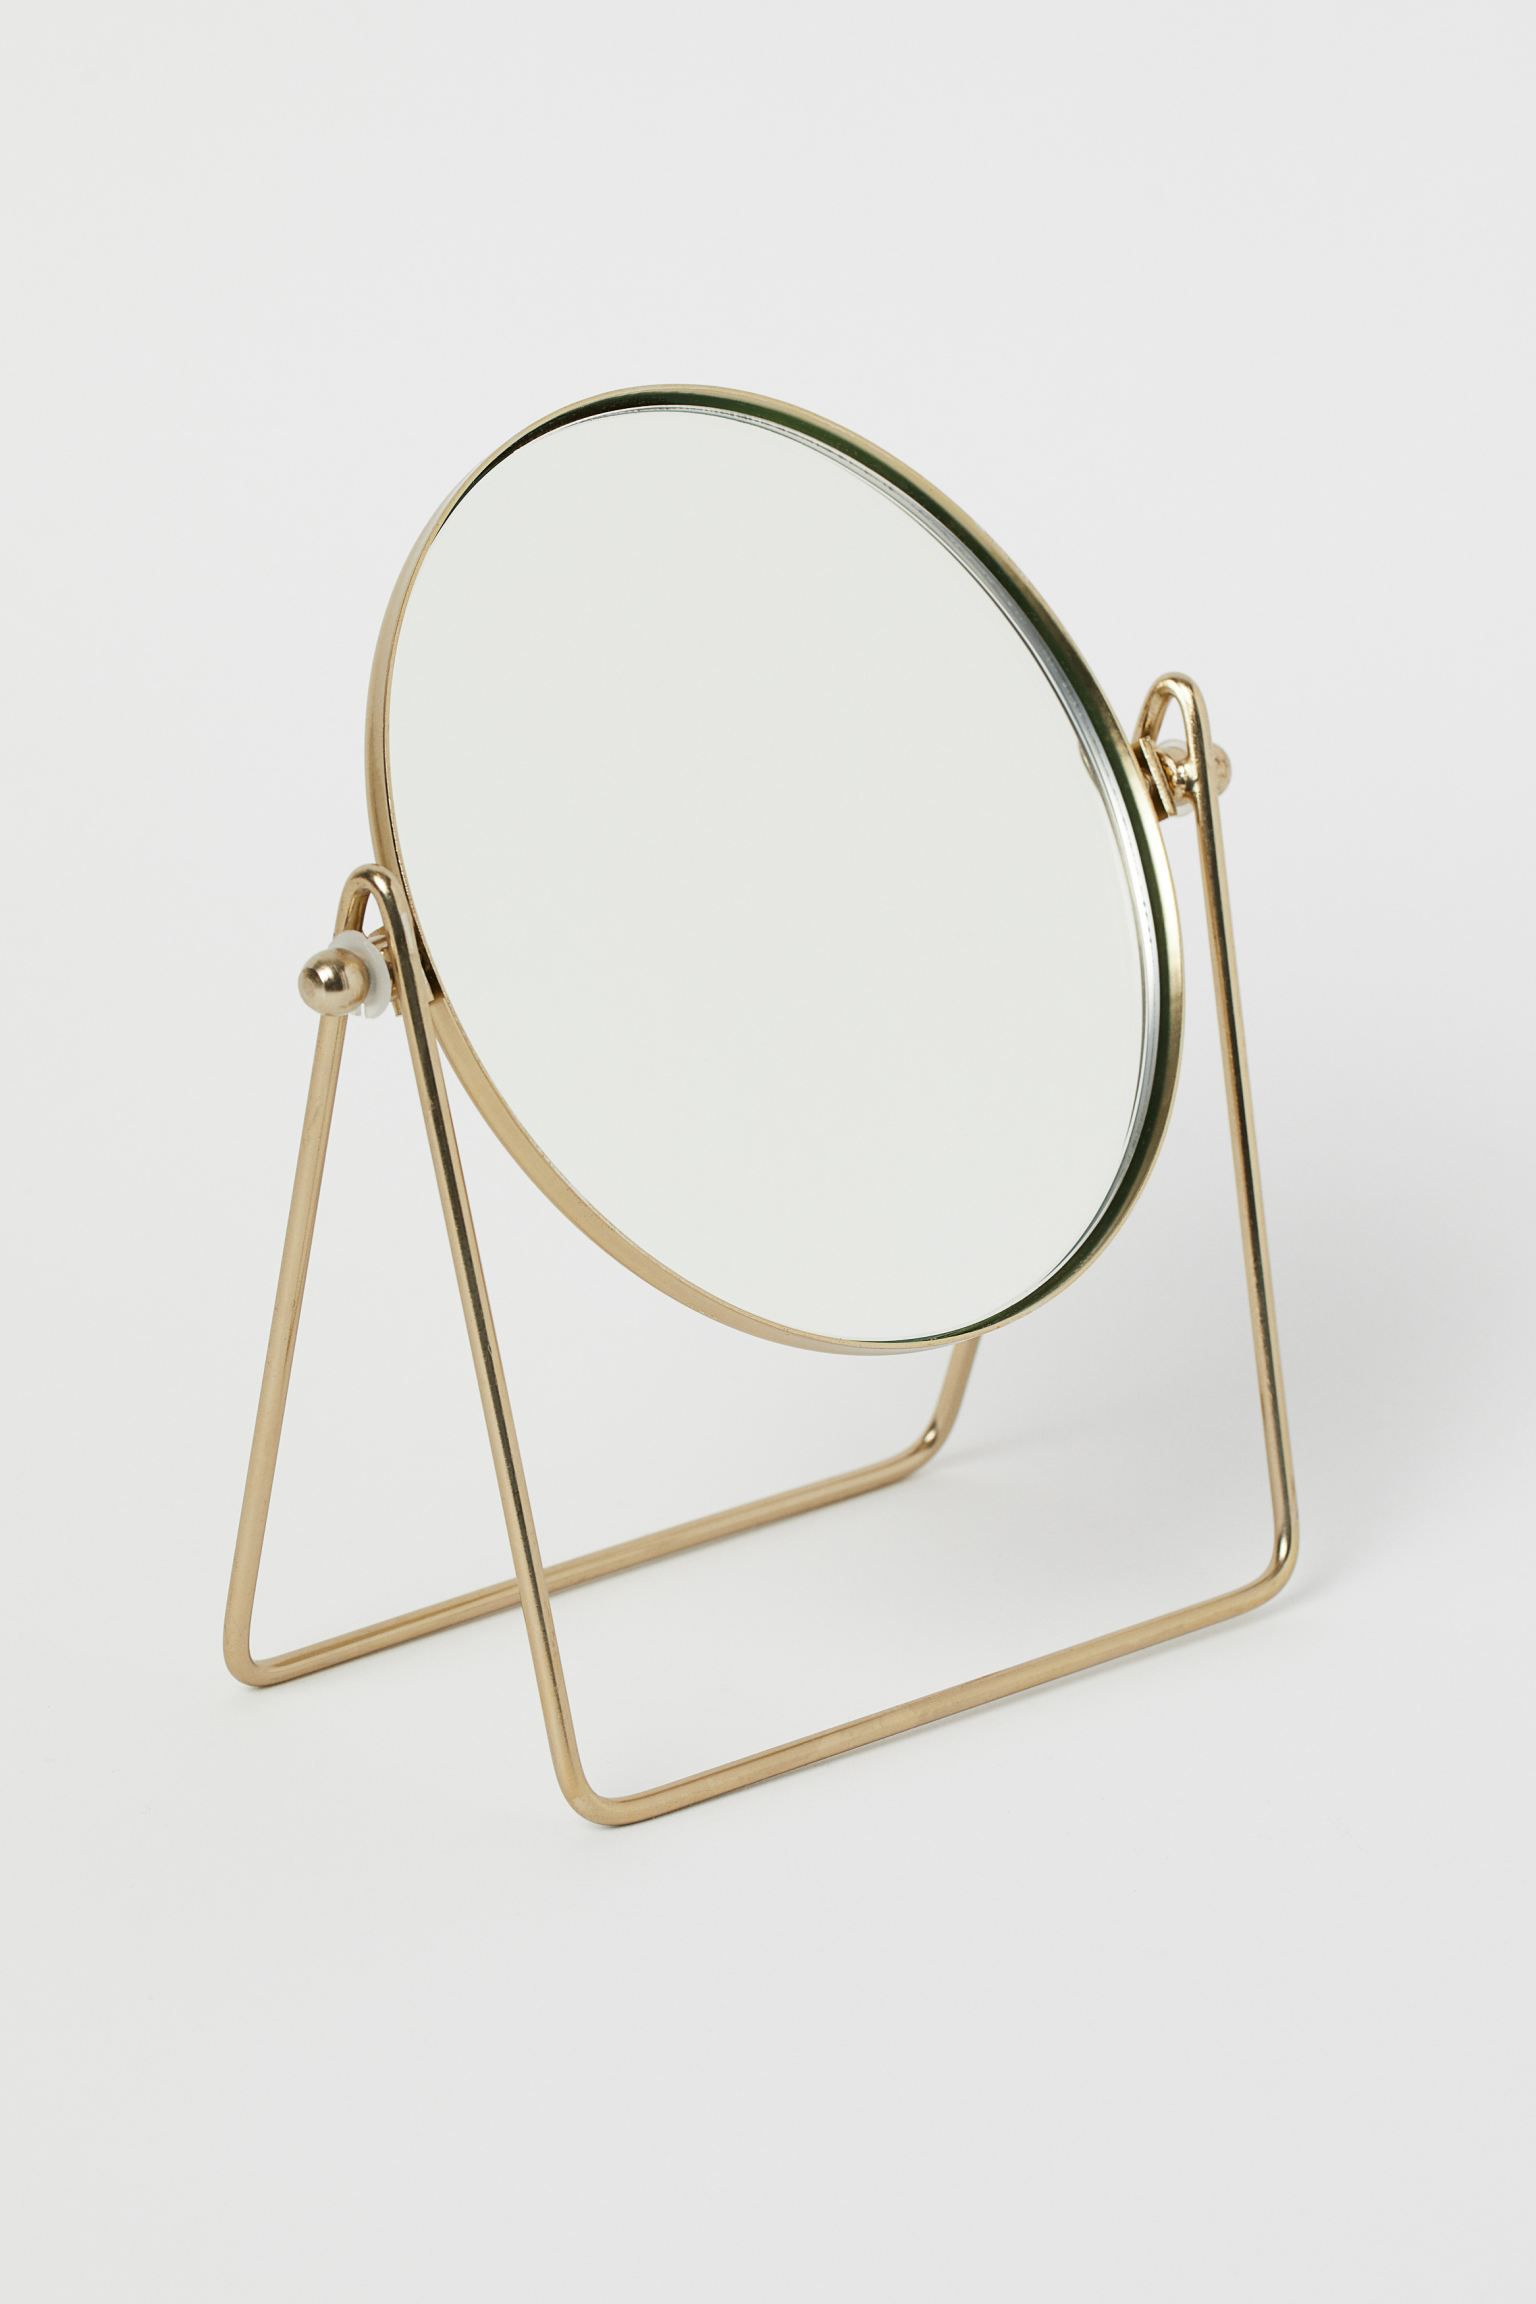 Metal table mirror in gold.